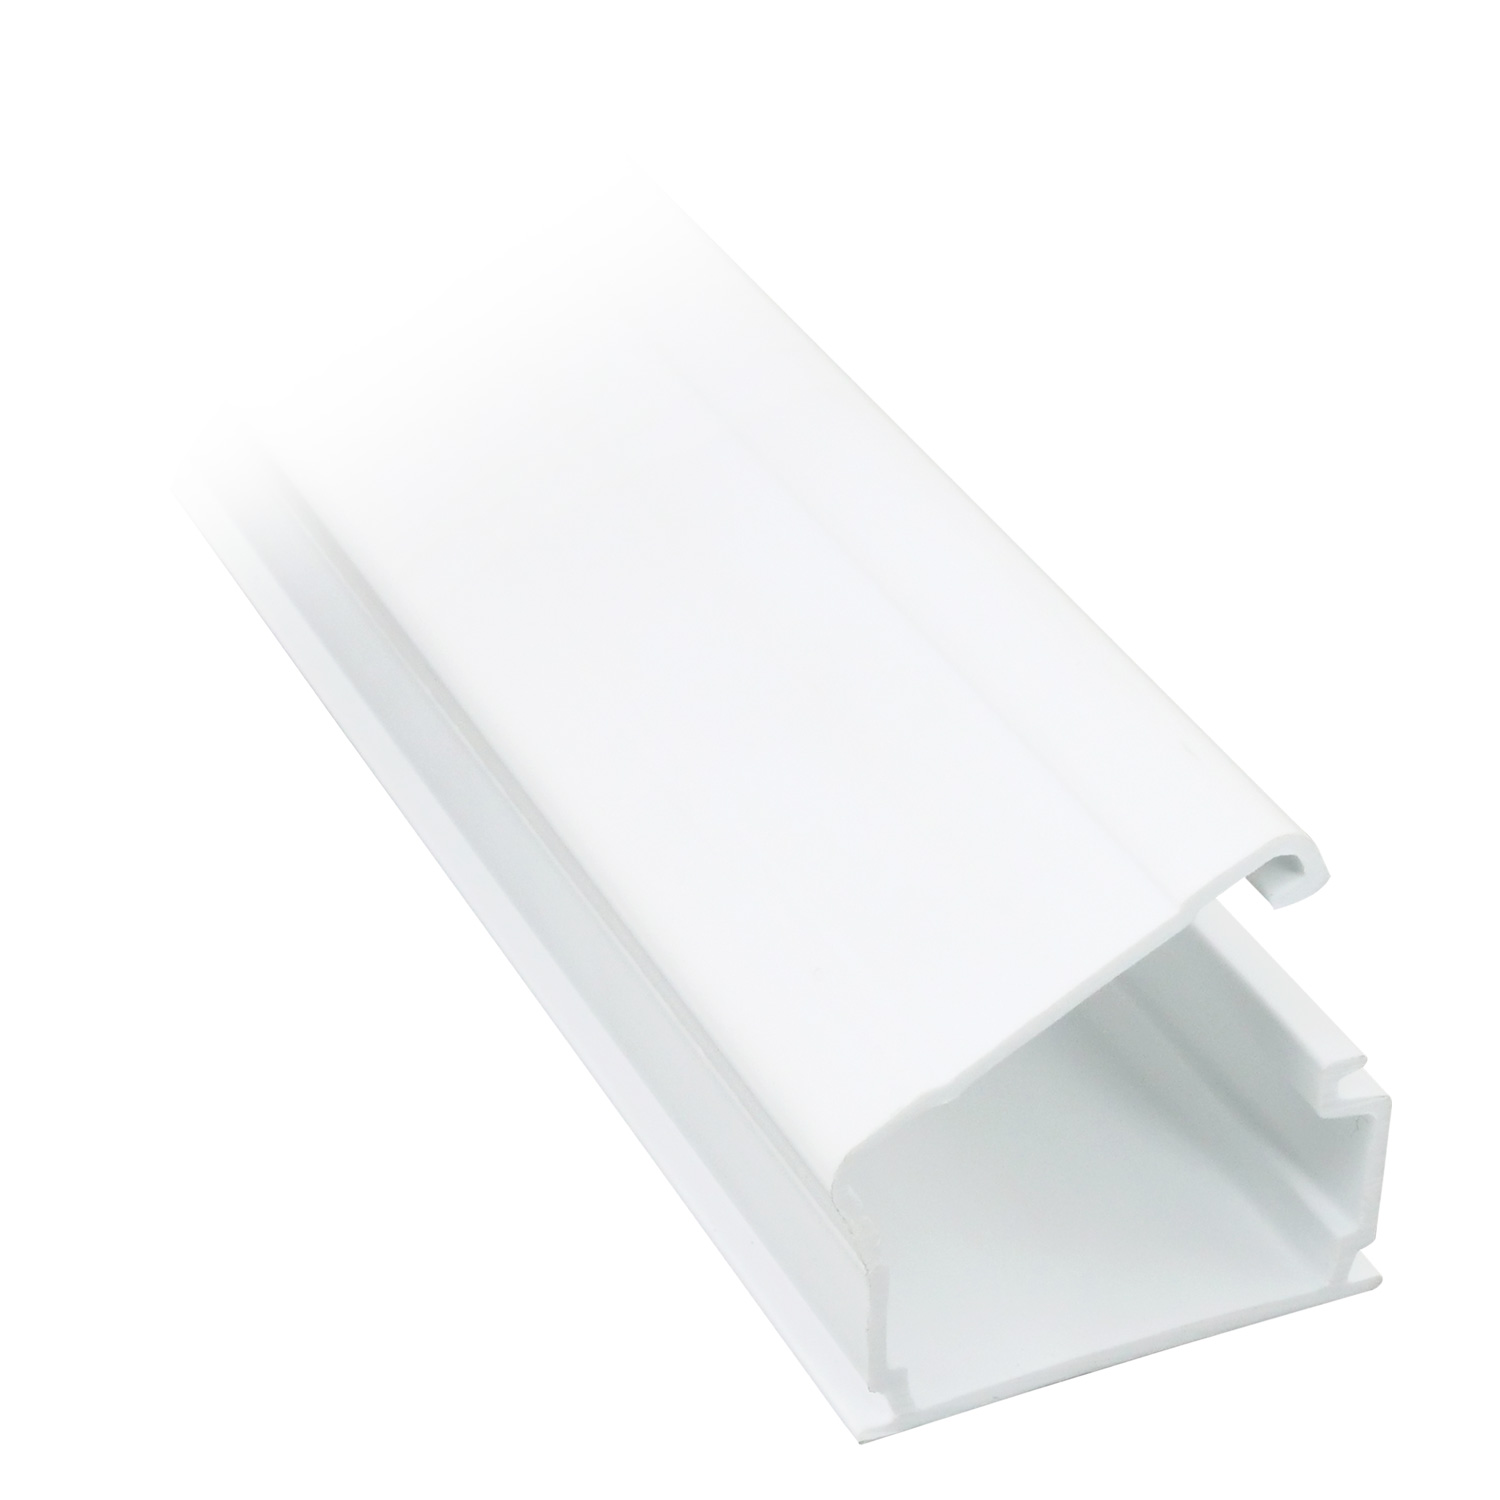 1-1/4 inch Surface Mount Raceway - 6ft, White